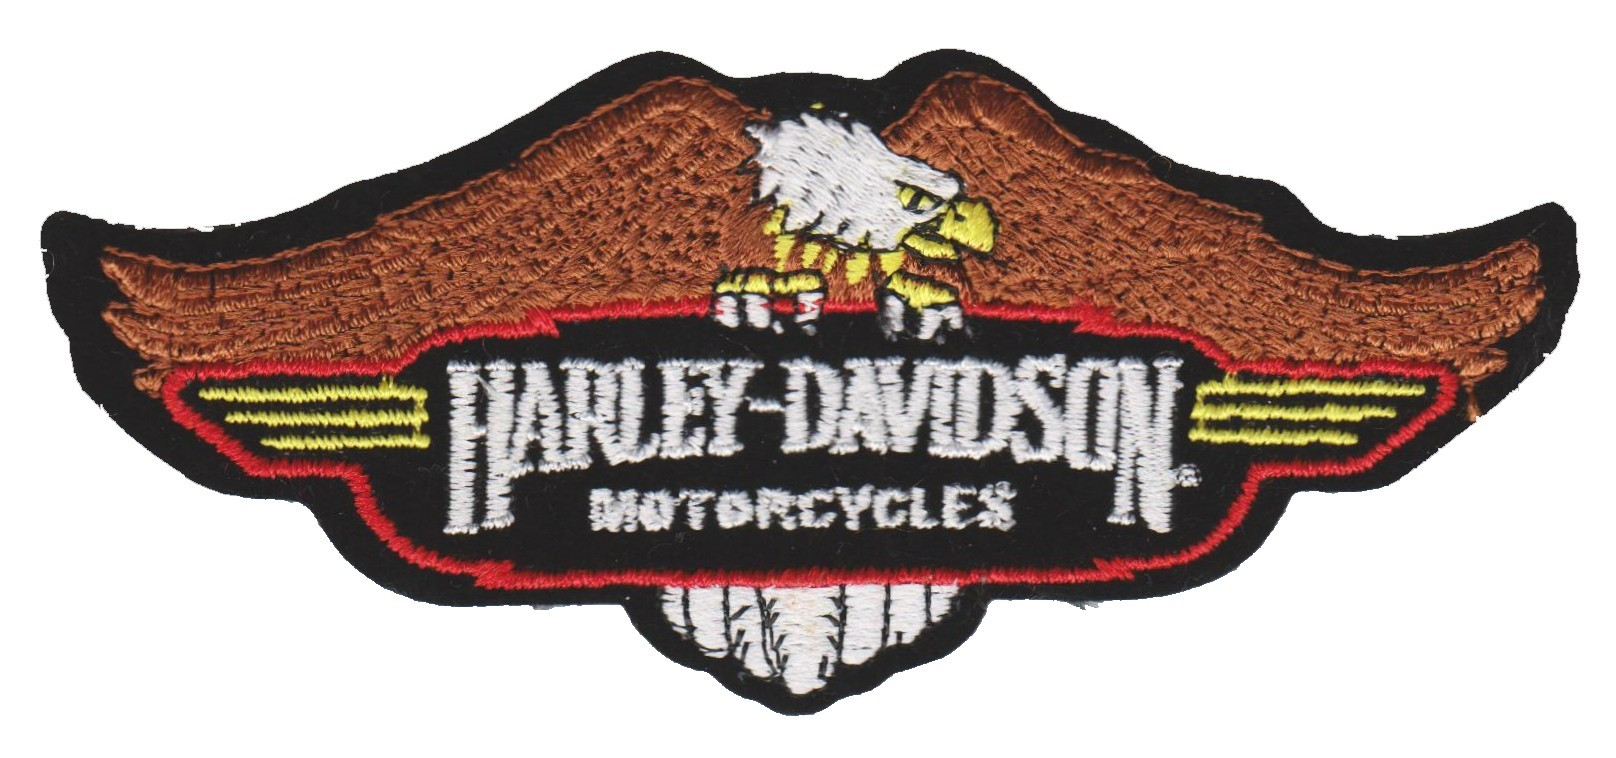 "Harley-Davidson ® Perched EagleHarley ® Patch5 1/4 "" x 2 1/4 ""FREE SHIPPING - Product Image"